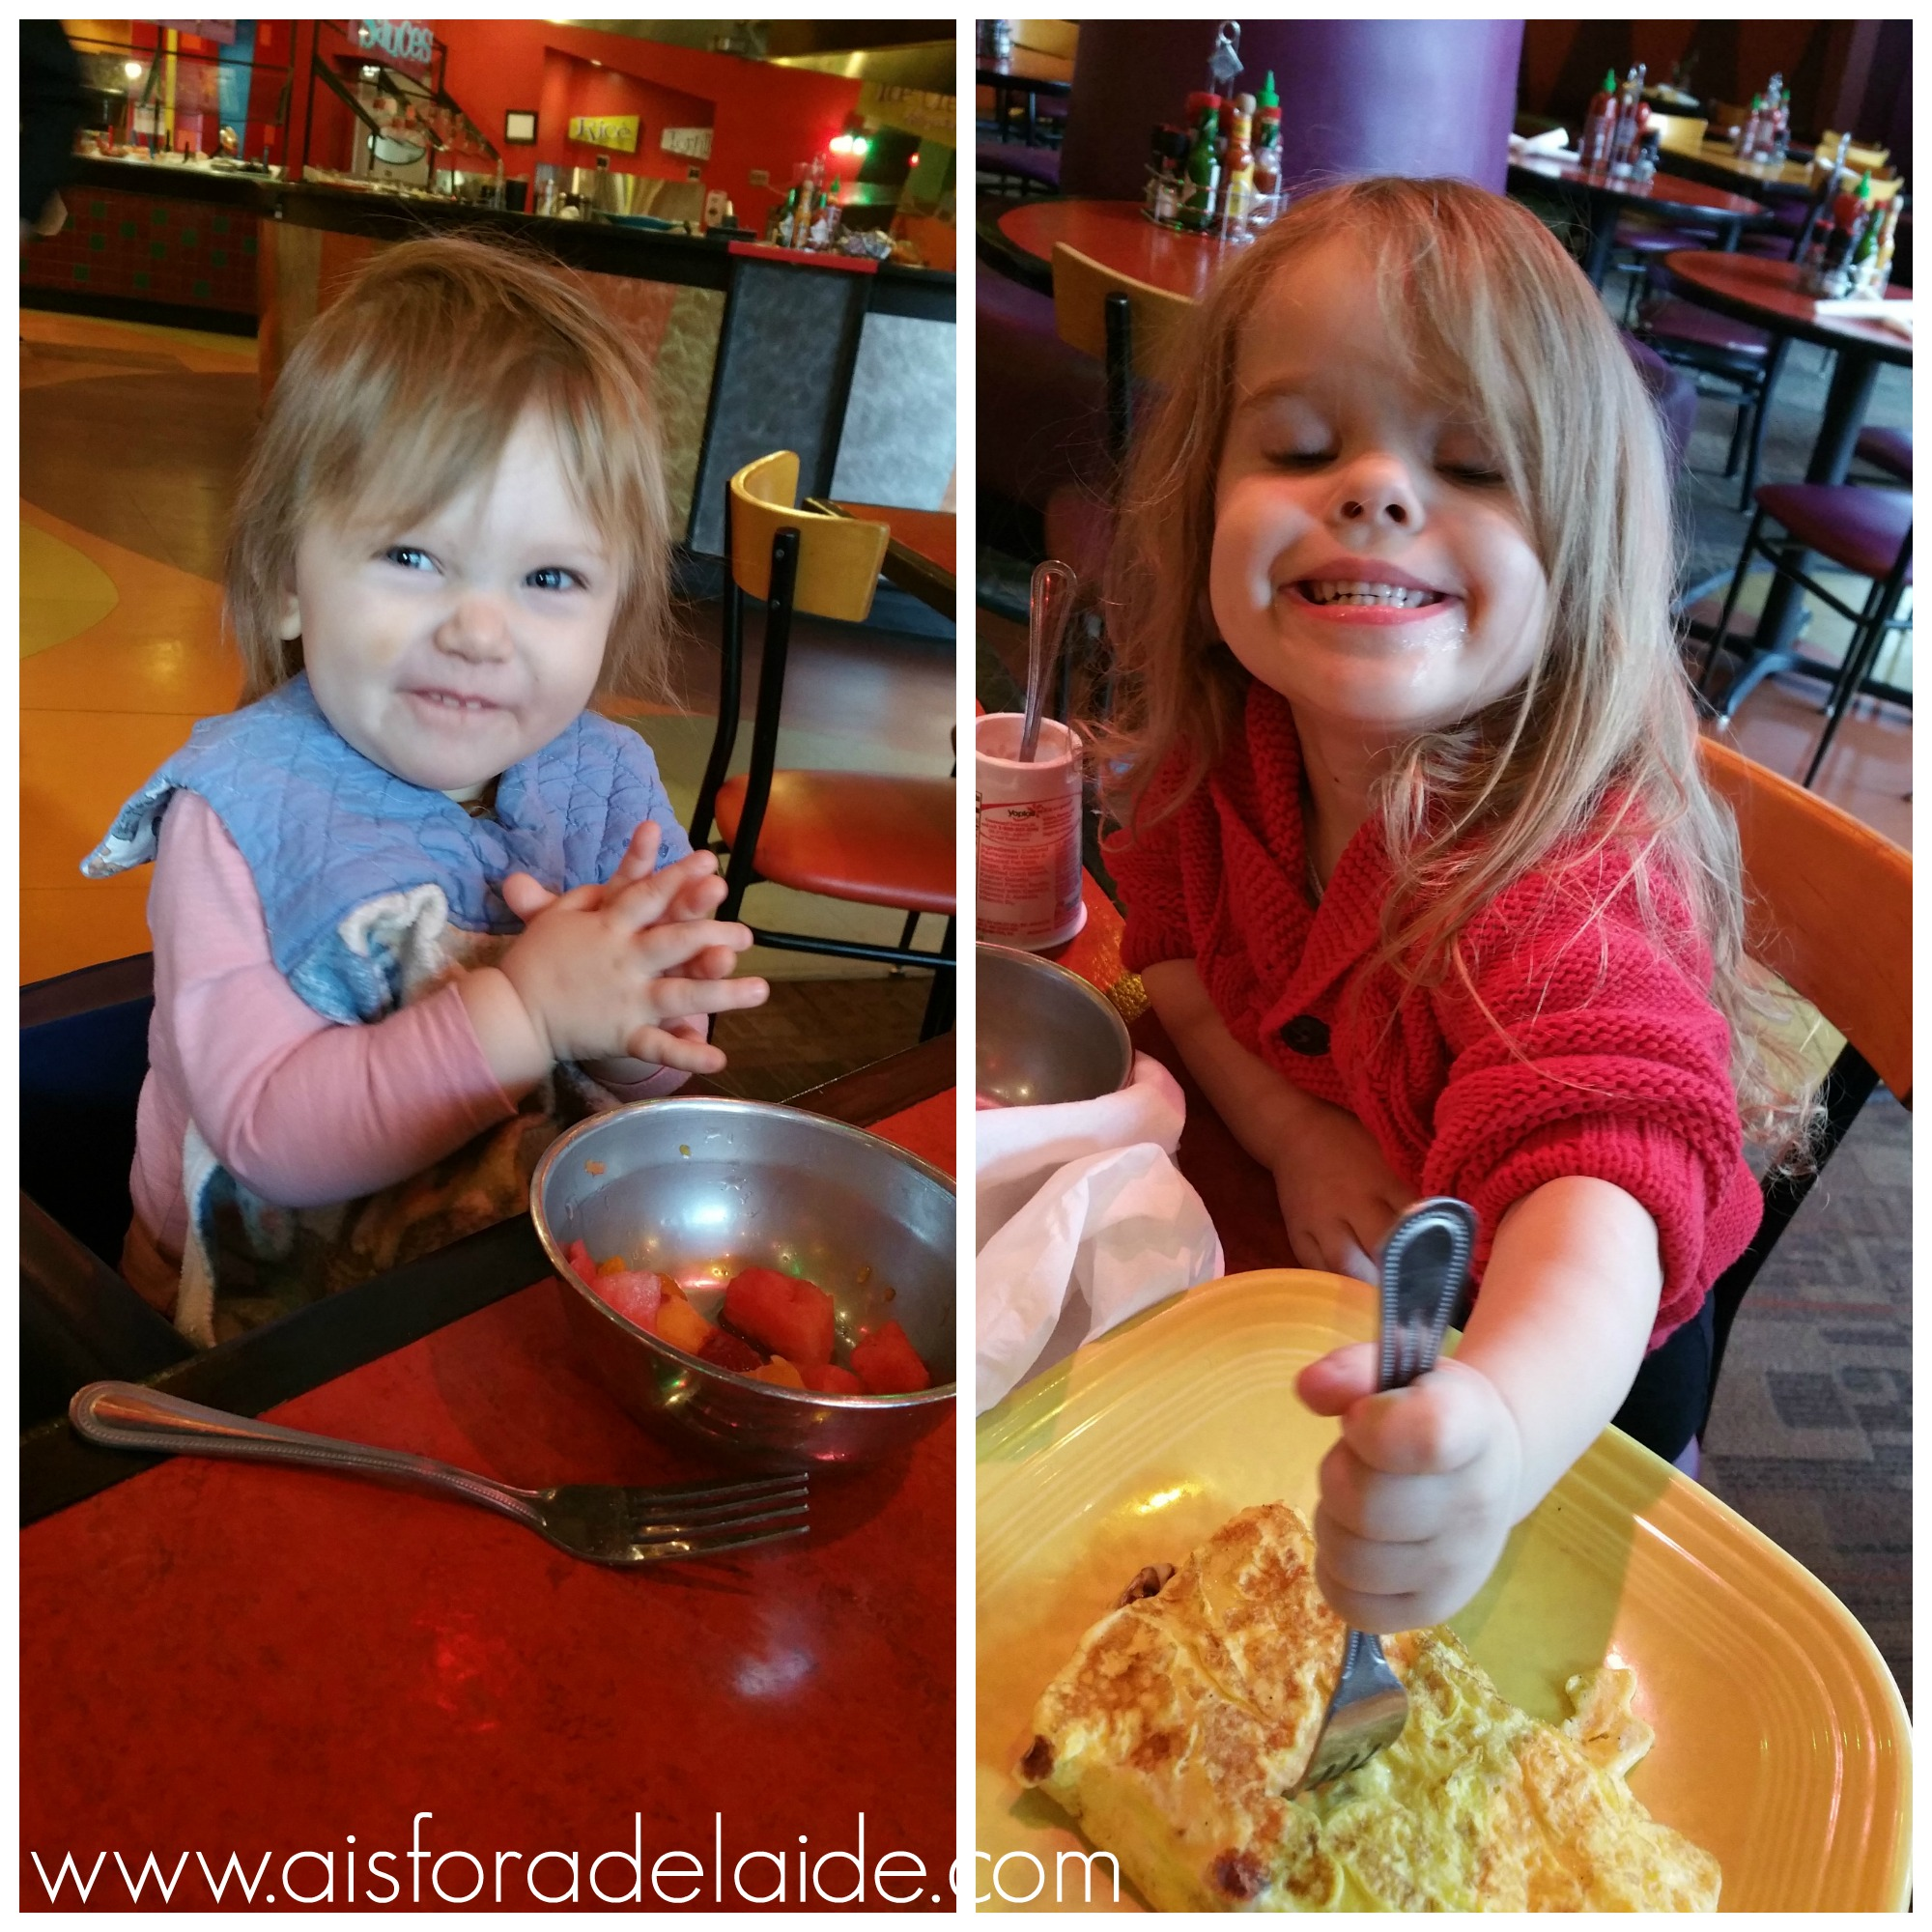 Check out Fire +iCE for brunch this weekend! Kids eat FREE! #review #hosted